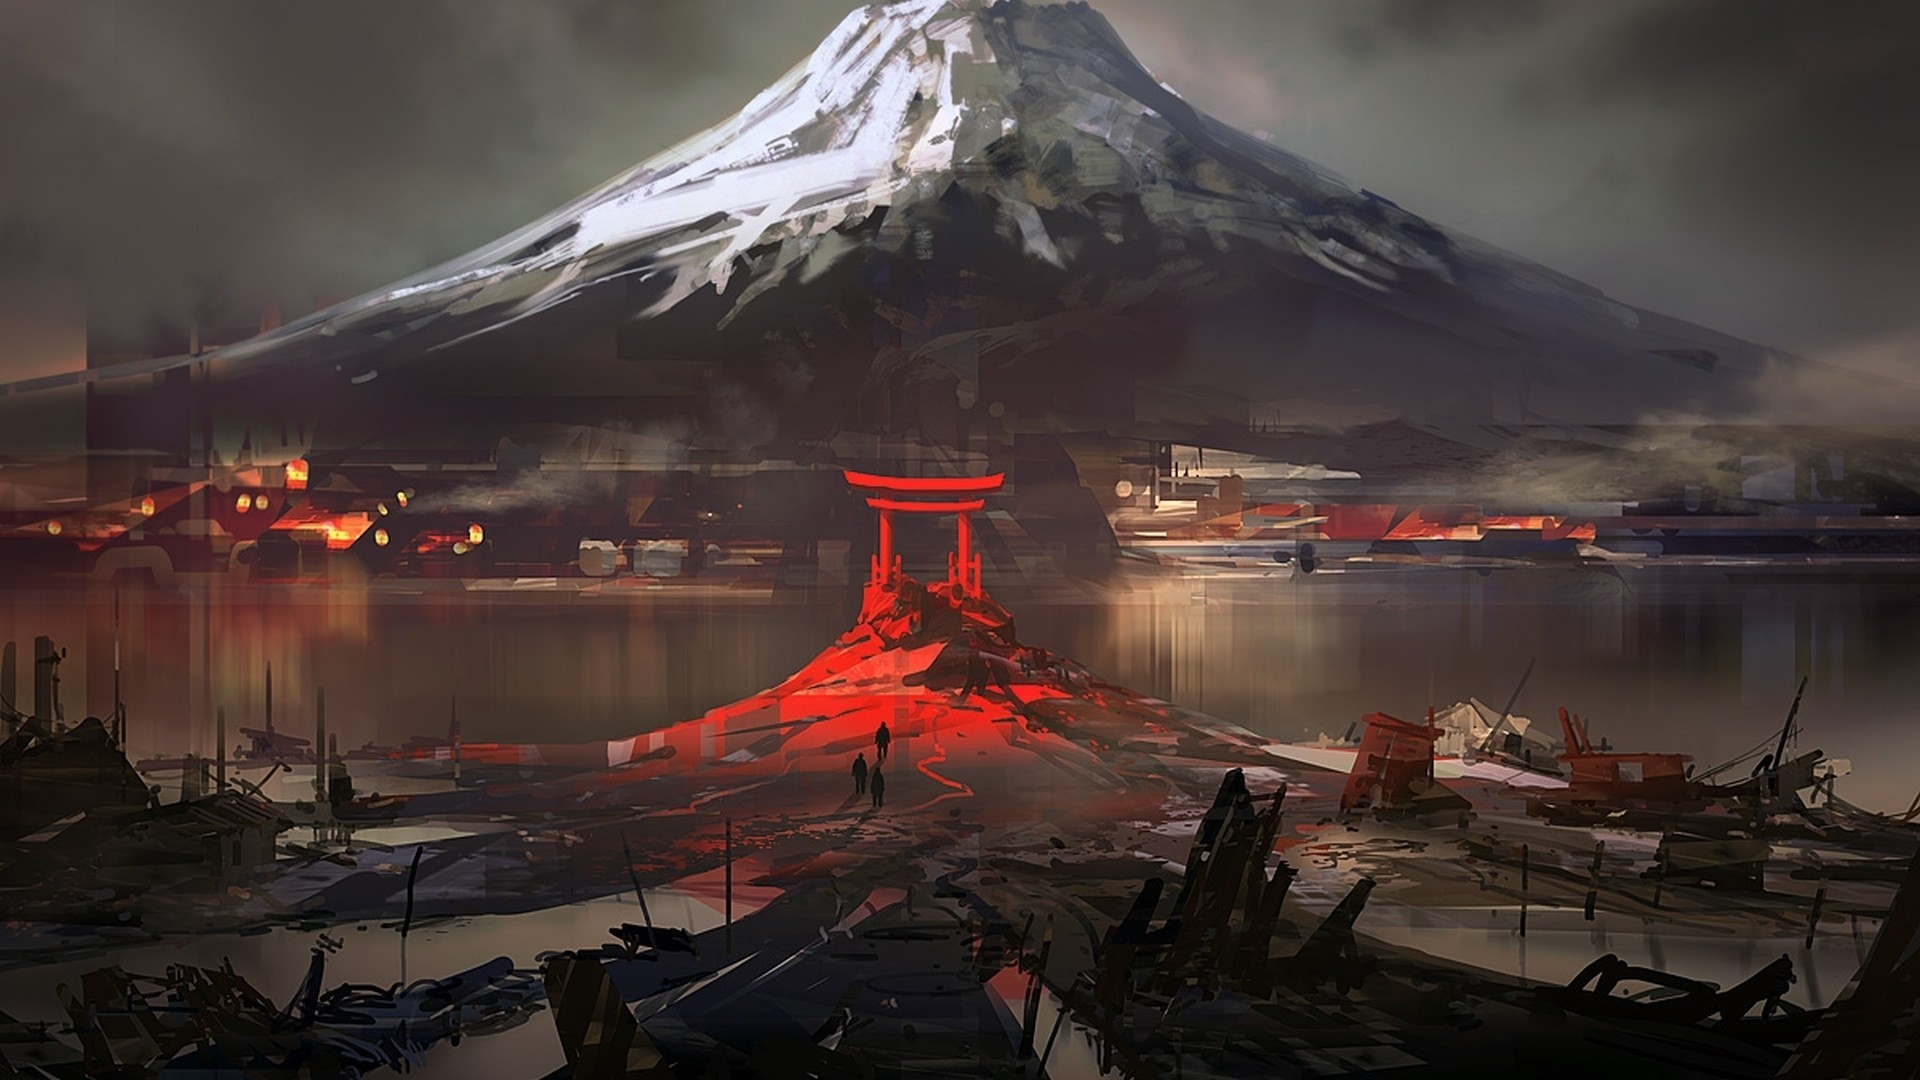 General 1920x1080 Japan Mount Fuji digital art nature landscape mountains snow winter water drawing house ruin torii